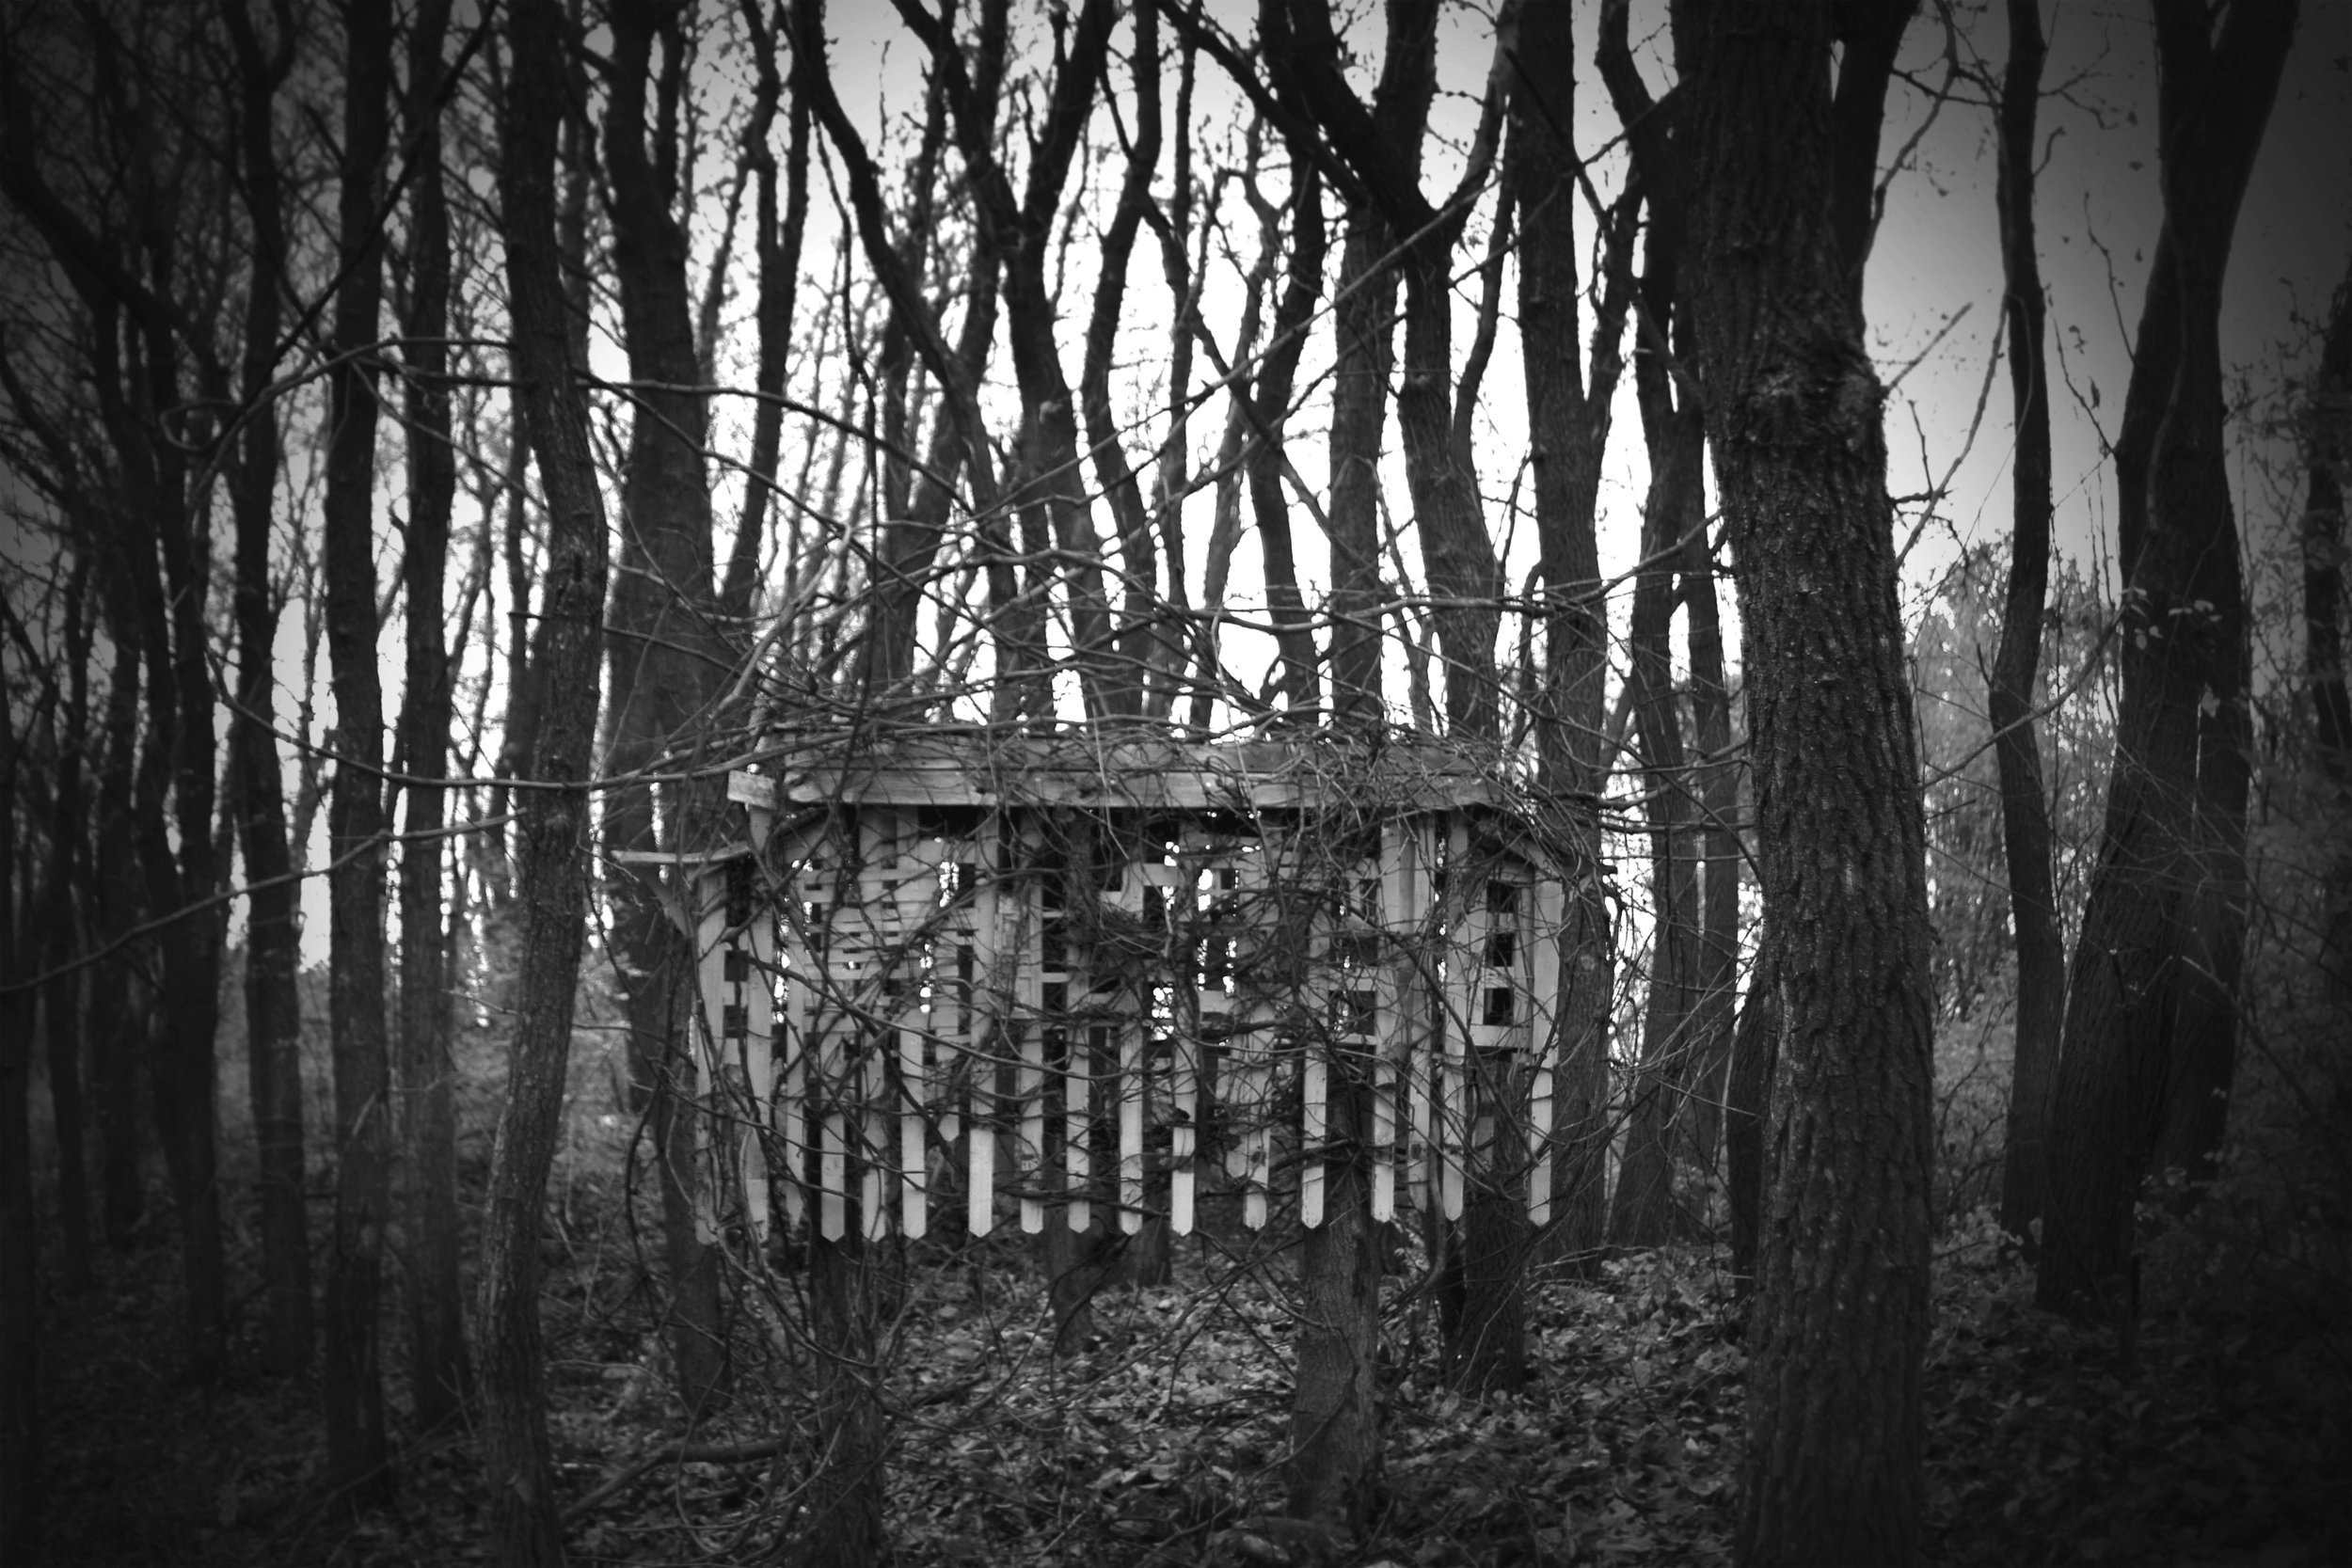 Picket House, Photograph/Sculpture, Robert Hite, 2007